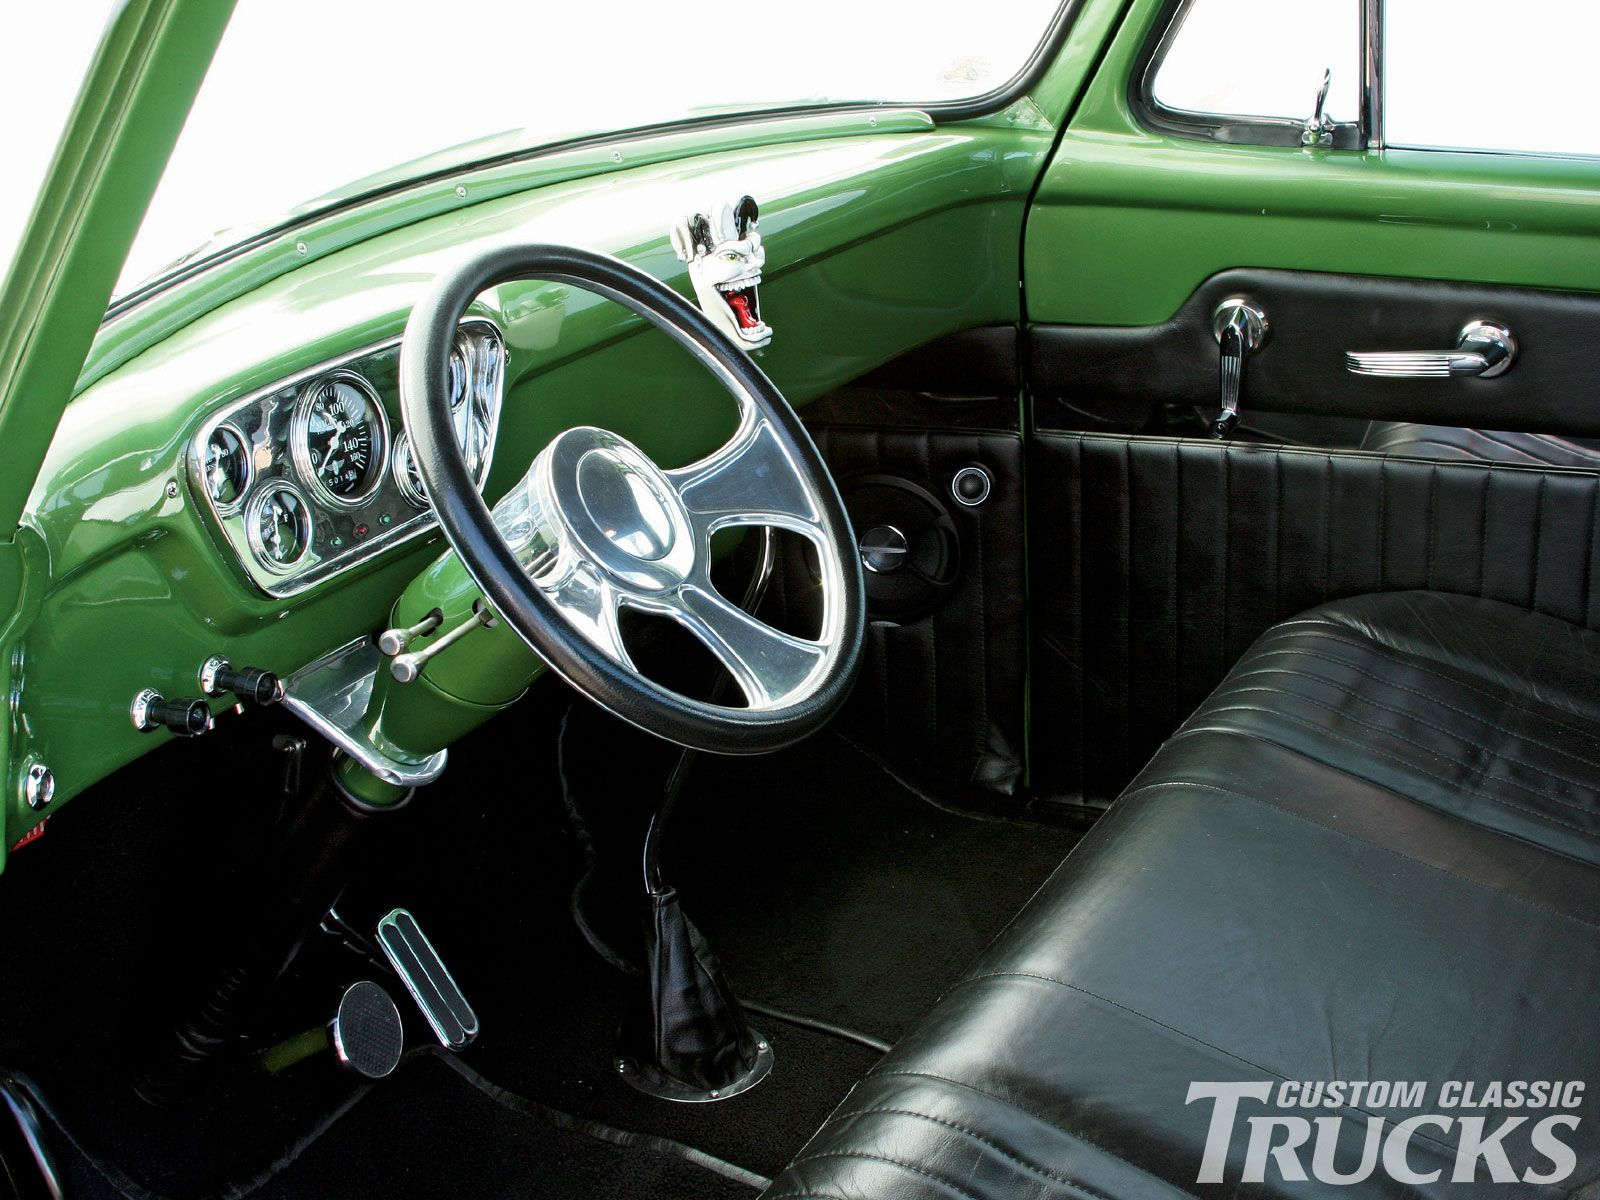 1955 chevy truck interior www galleryhip com the - Image Result For 1953 Ford F250 Diy Interiortruckford